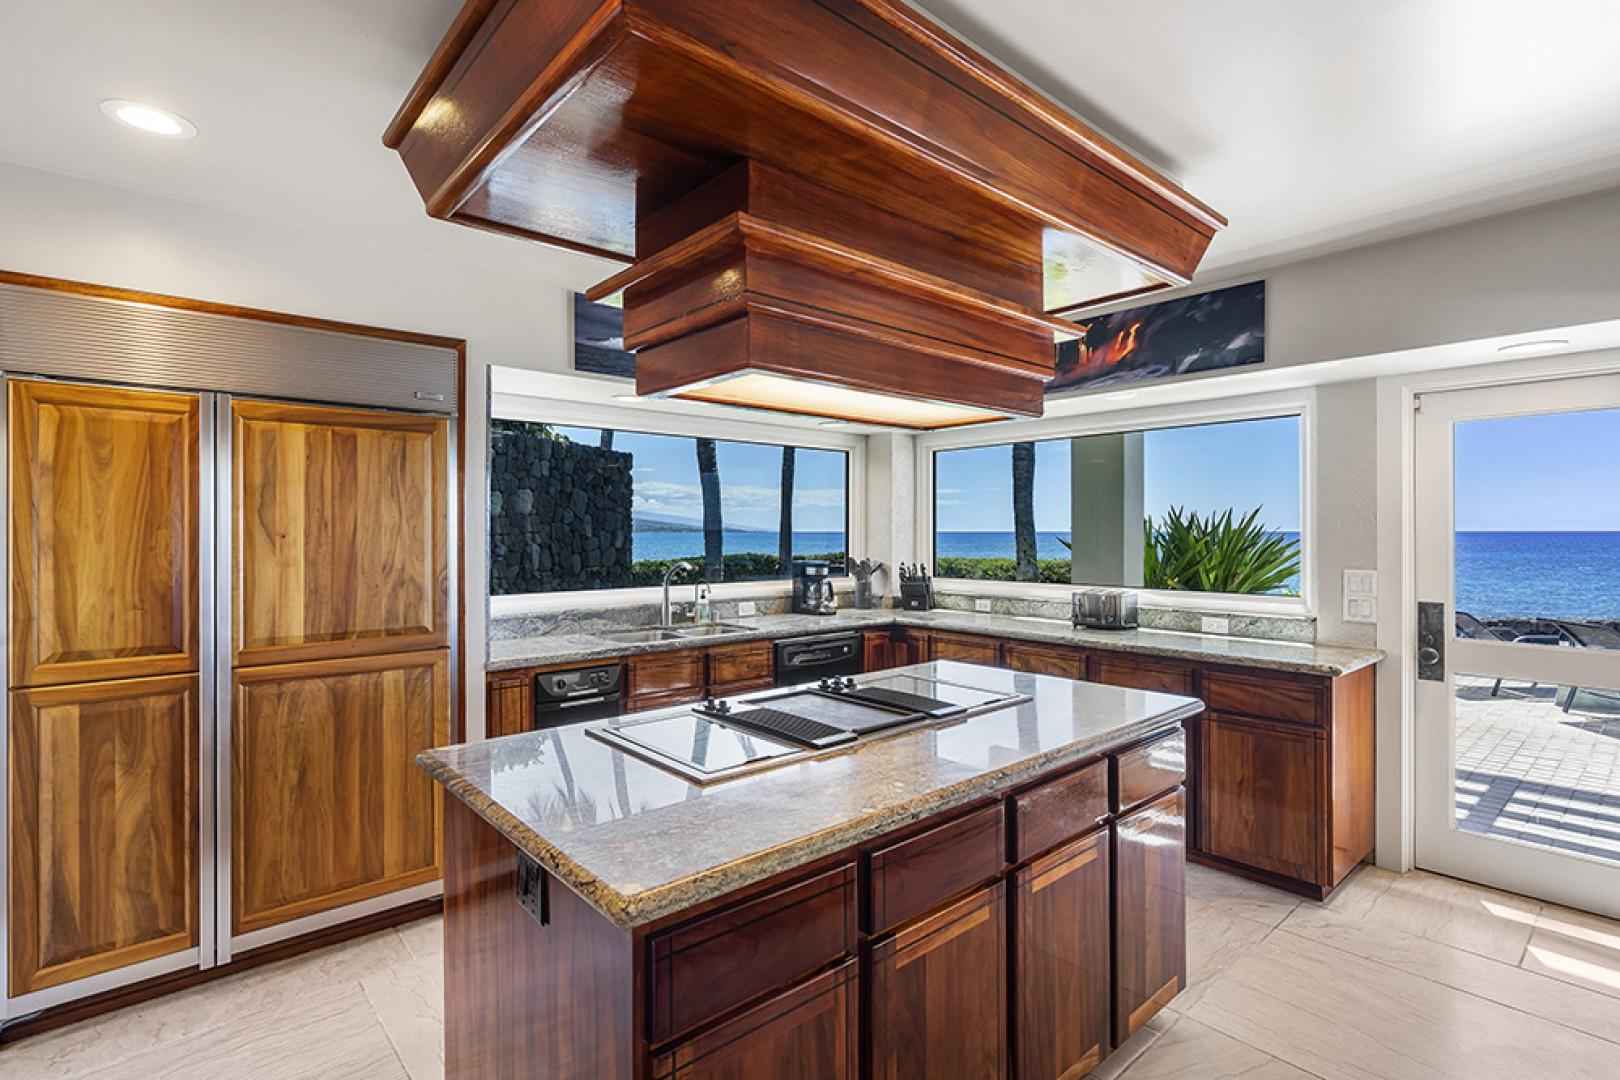 Gorgeous Kitchen with Koa wood cabinetry